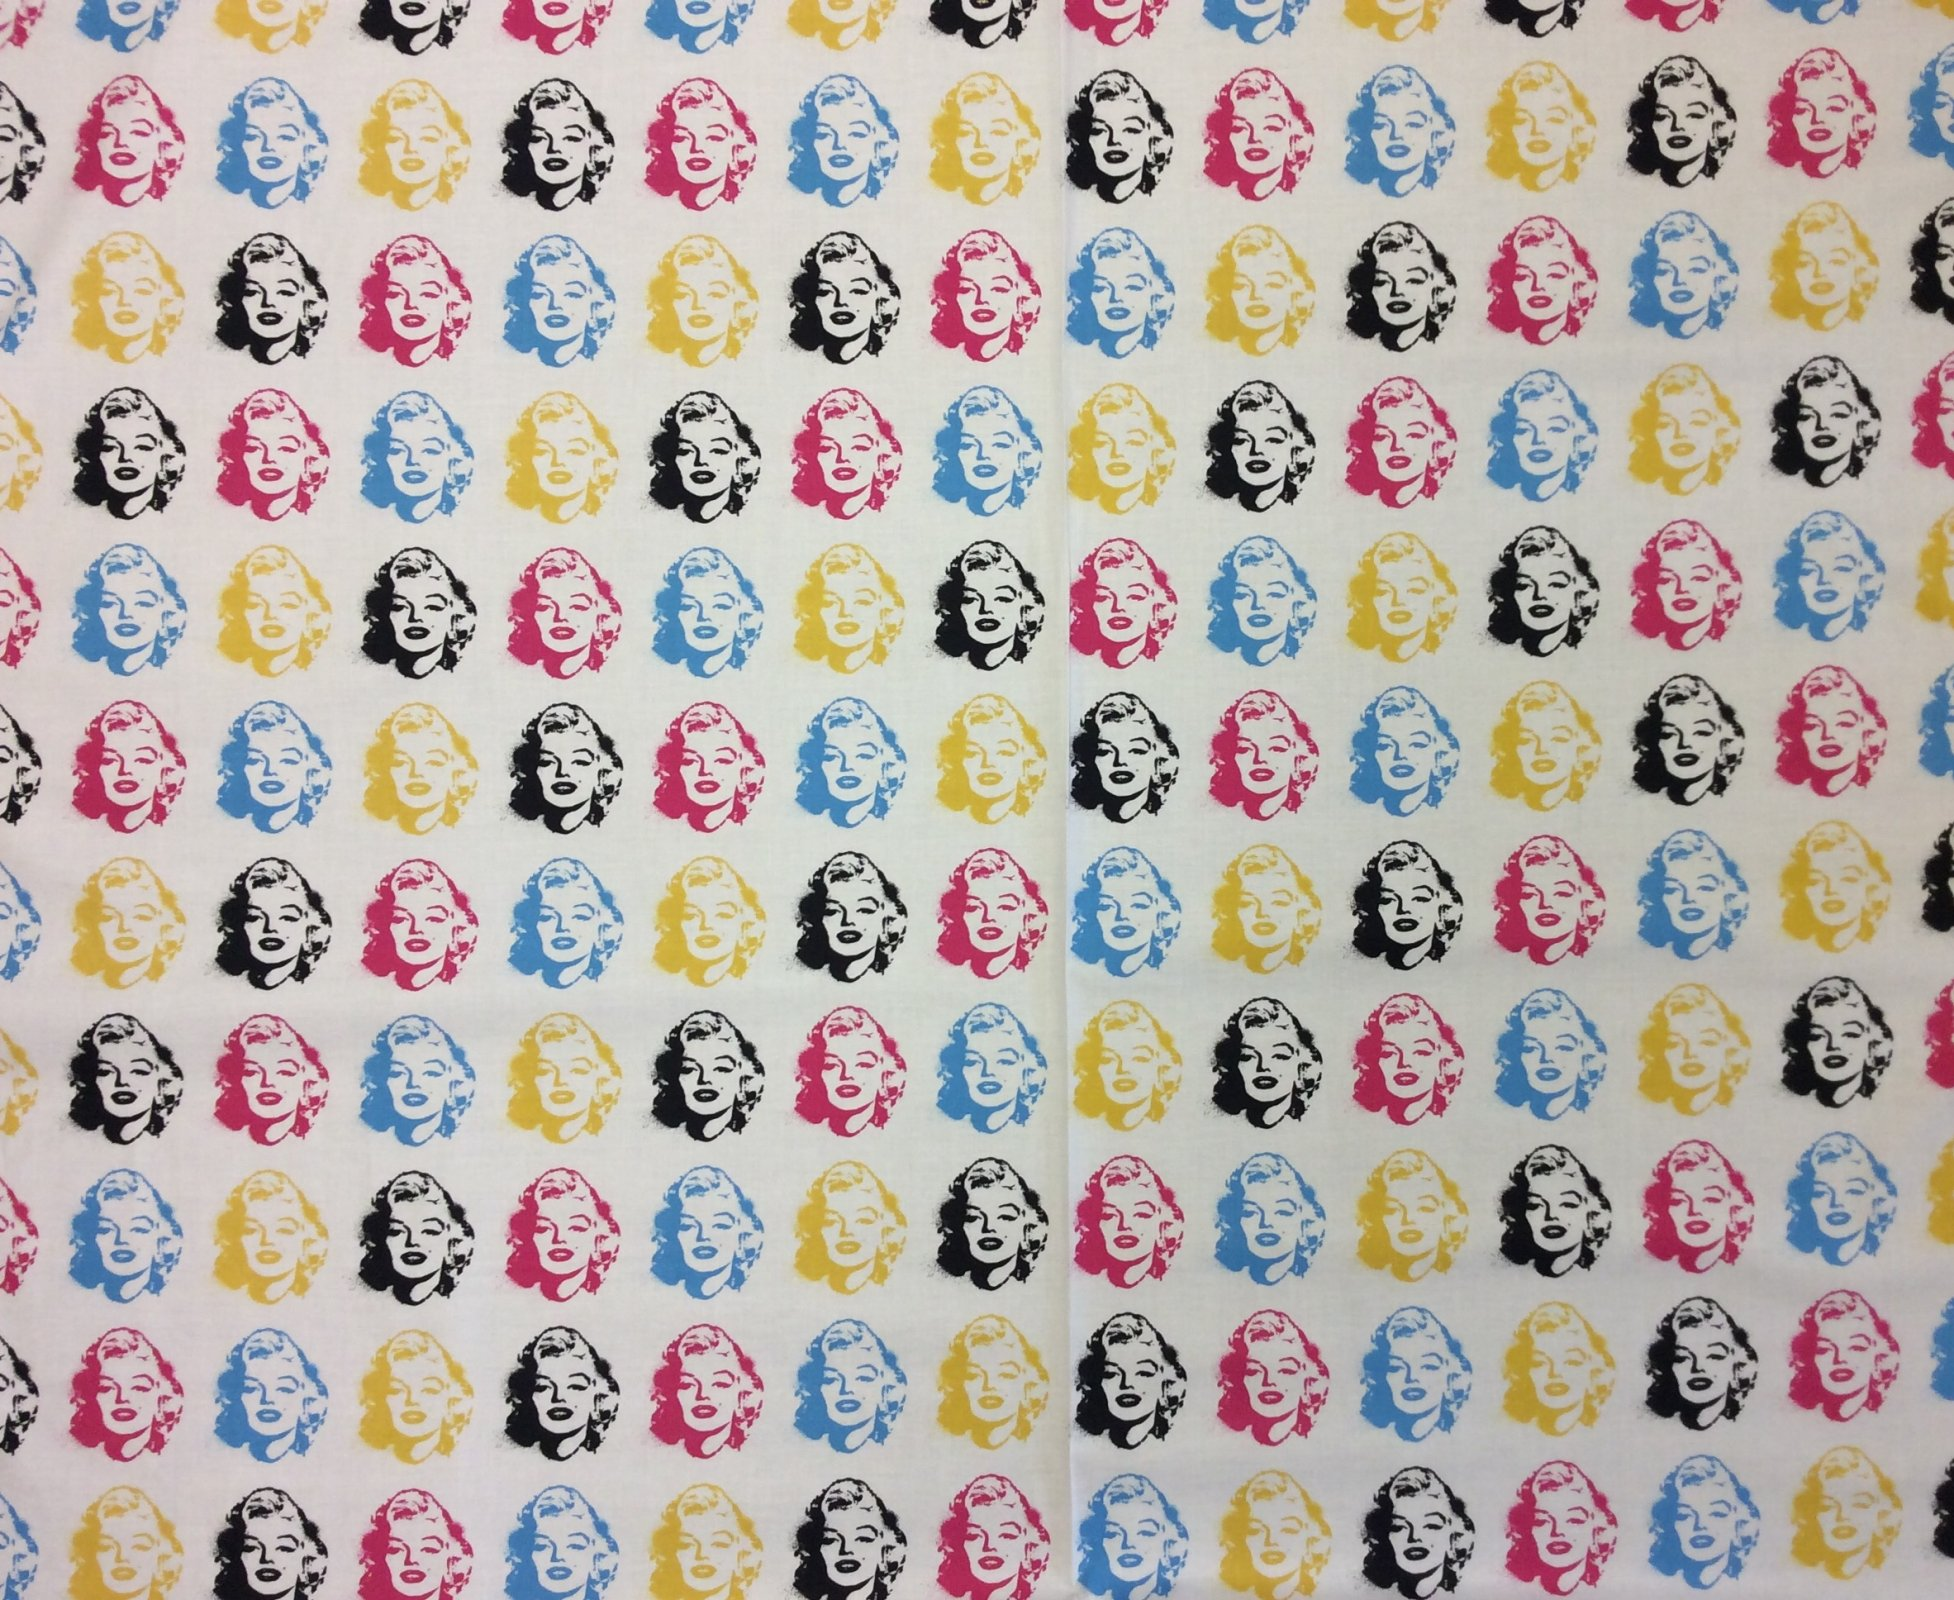 Marilyn Monroe Warhol Style Pop Art Cotton Quilt Fabric RK176